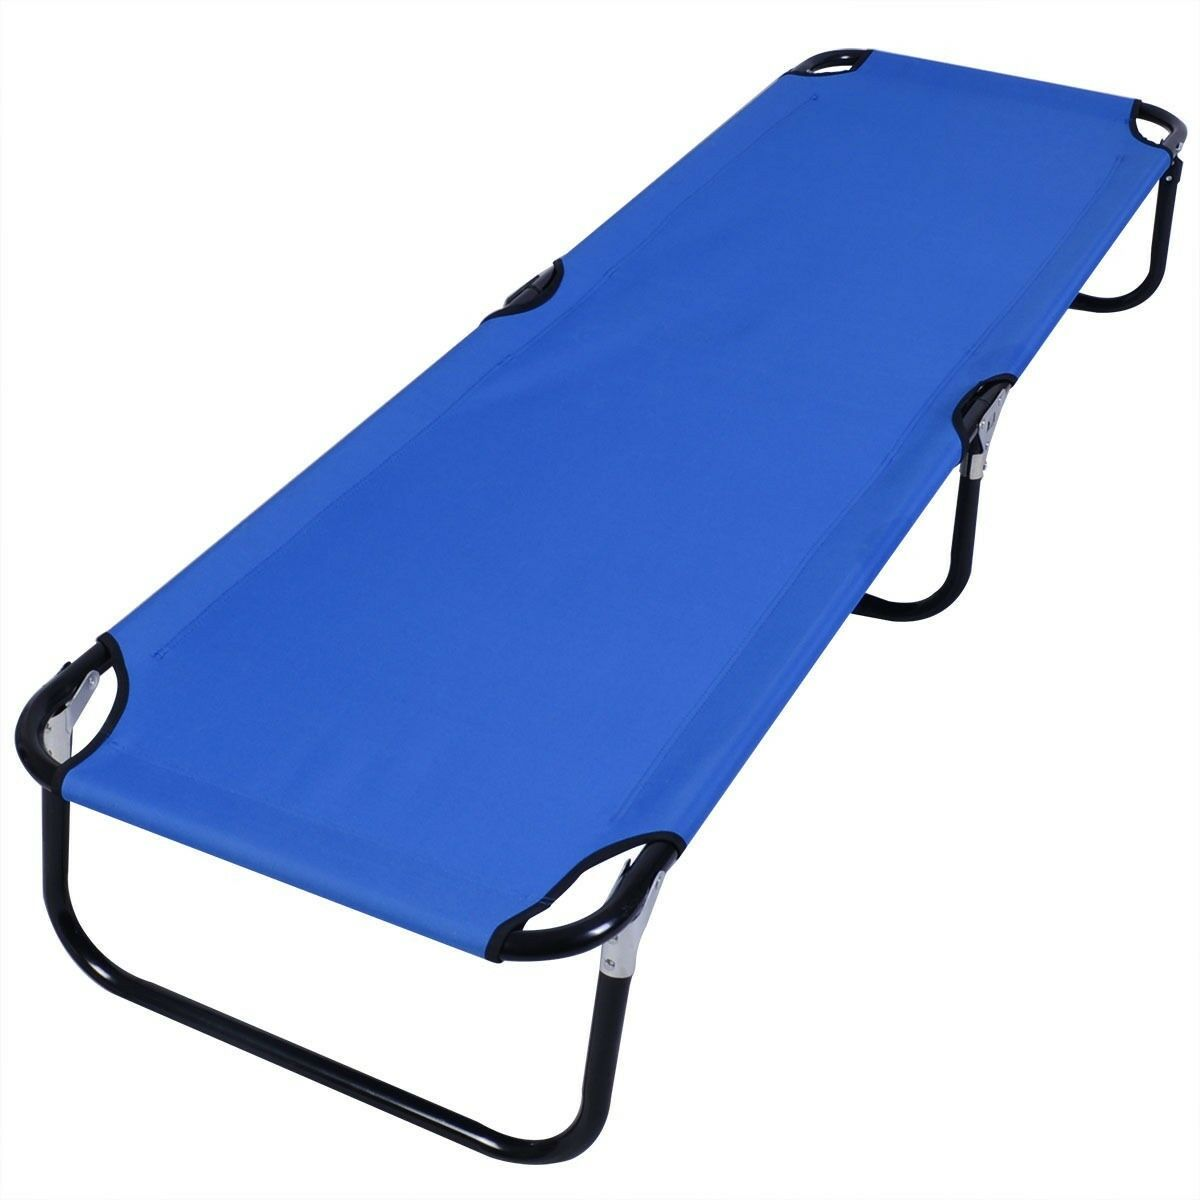 Outdoor Portable Foldable Camping Sleep  Bed Military Cot Sleeping Hiking Travel  selling well all over the world